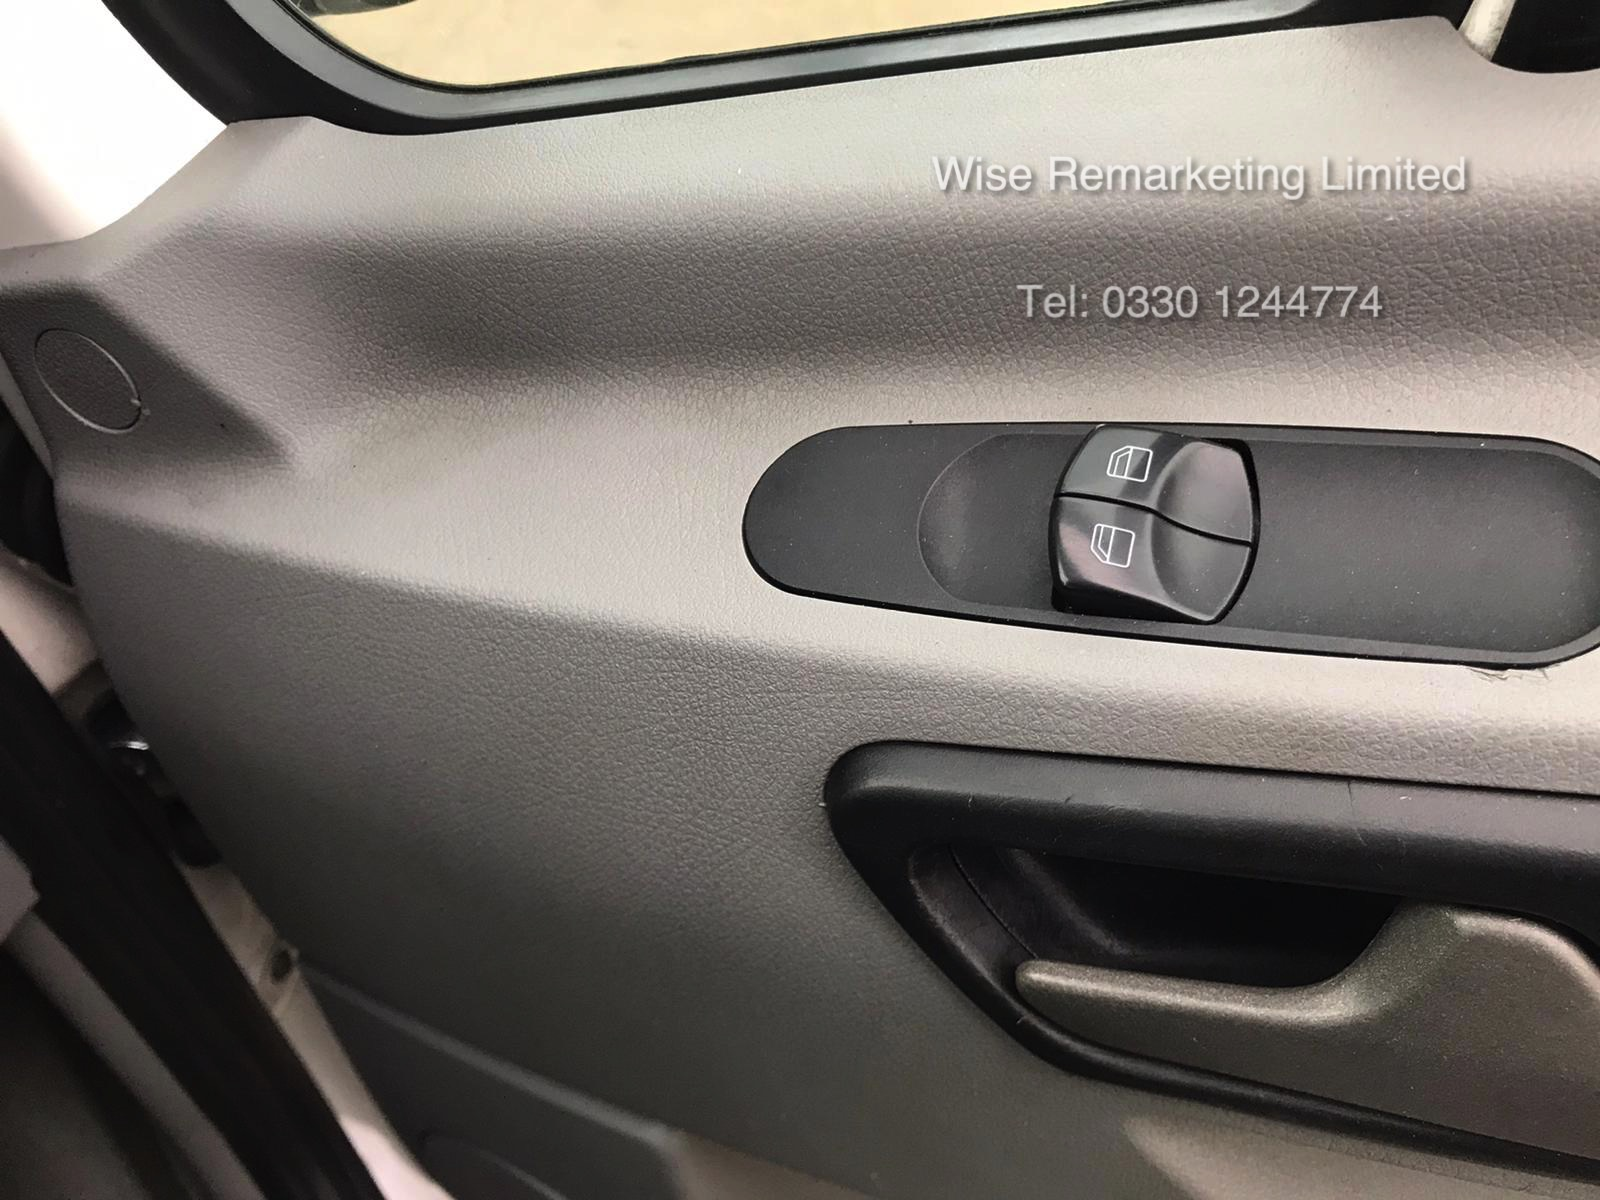 Volkswagen Crafter CR35 Startline 2.0l TDi - LWB - 2016 Model -1 Keeper From New - Service History - Image 10 of 15